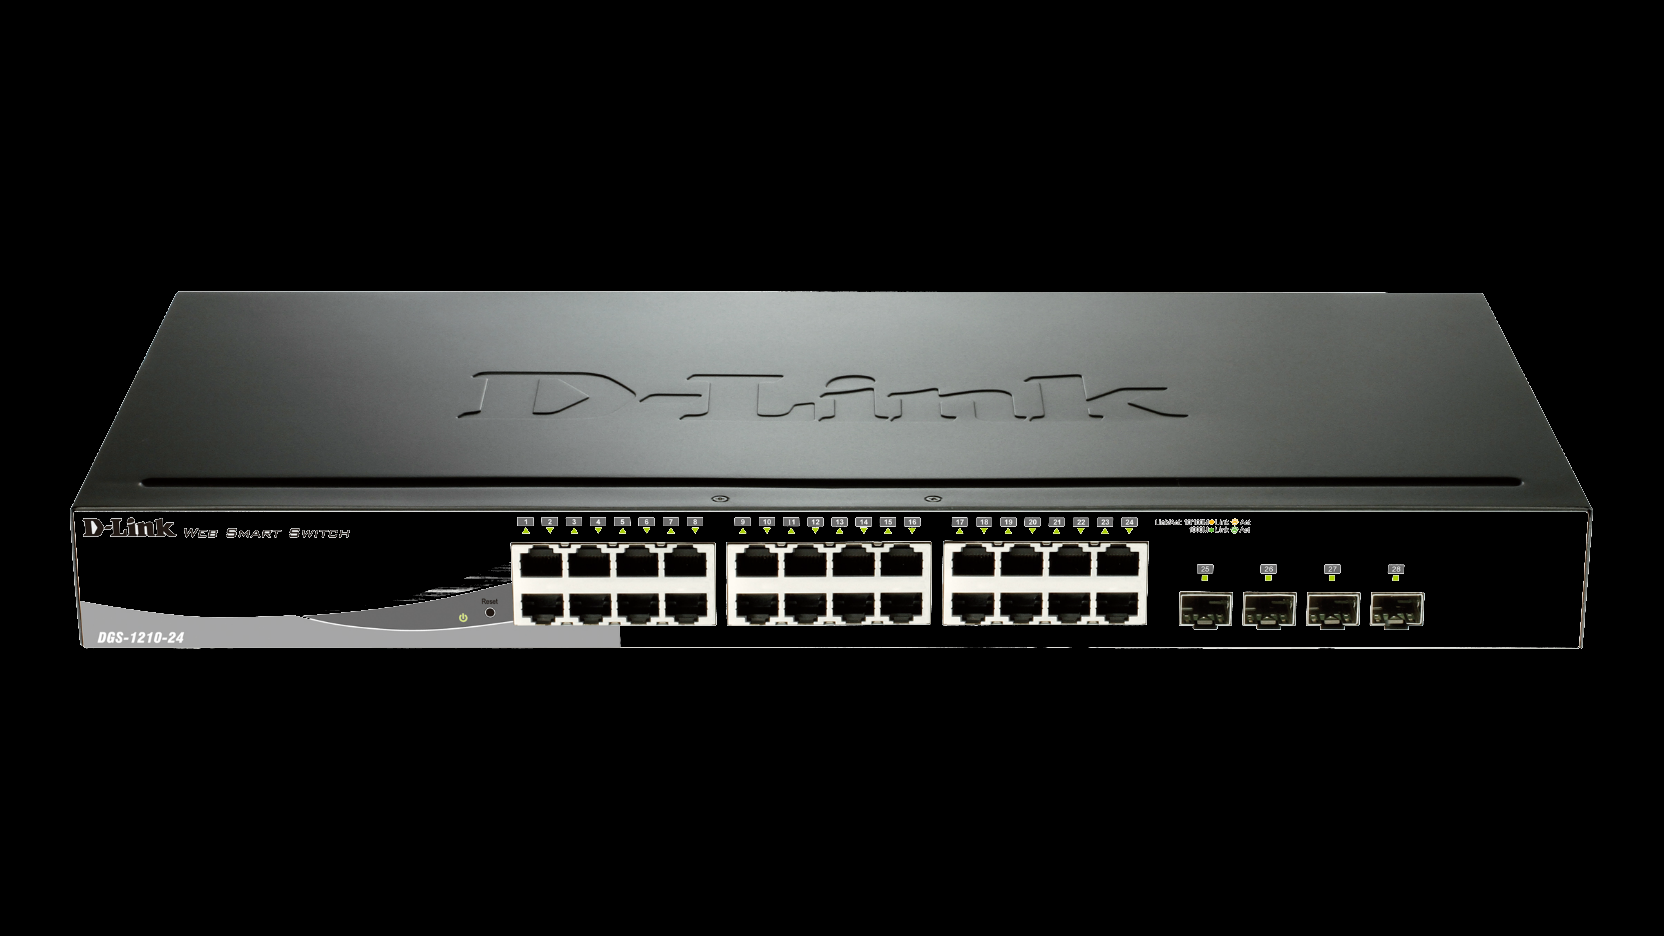 HÁLÓZATI SWITCH DLINK DGS-1210-24 24PORT